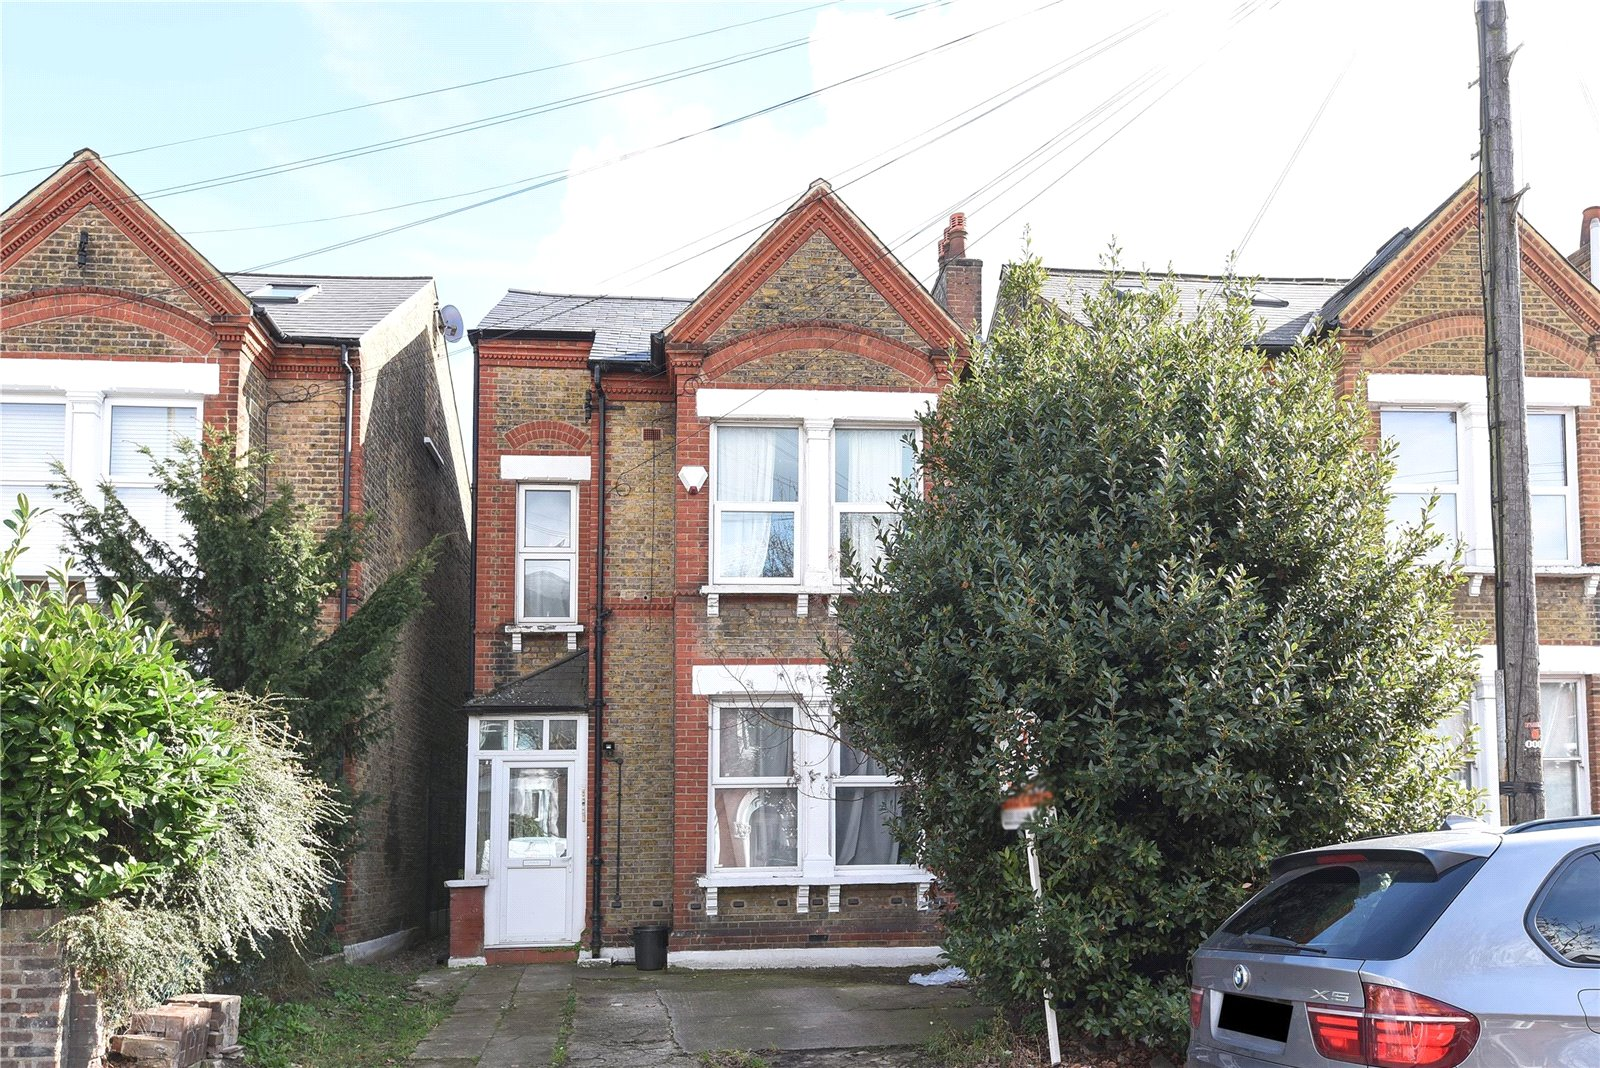 5 bed house for sale in Streatham - Property Image 1